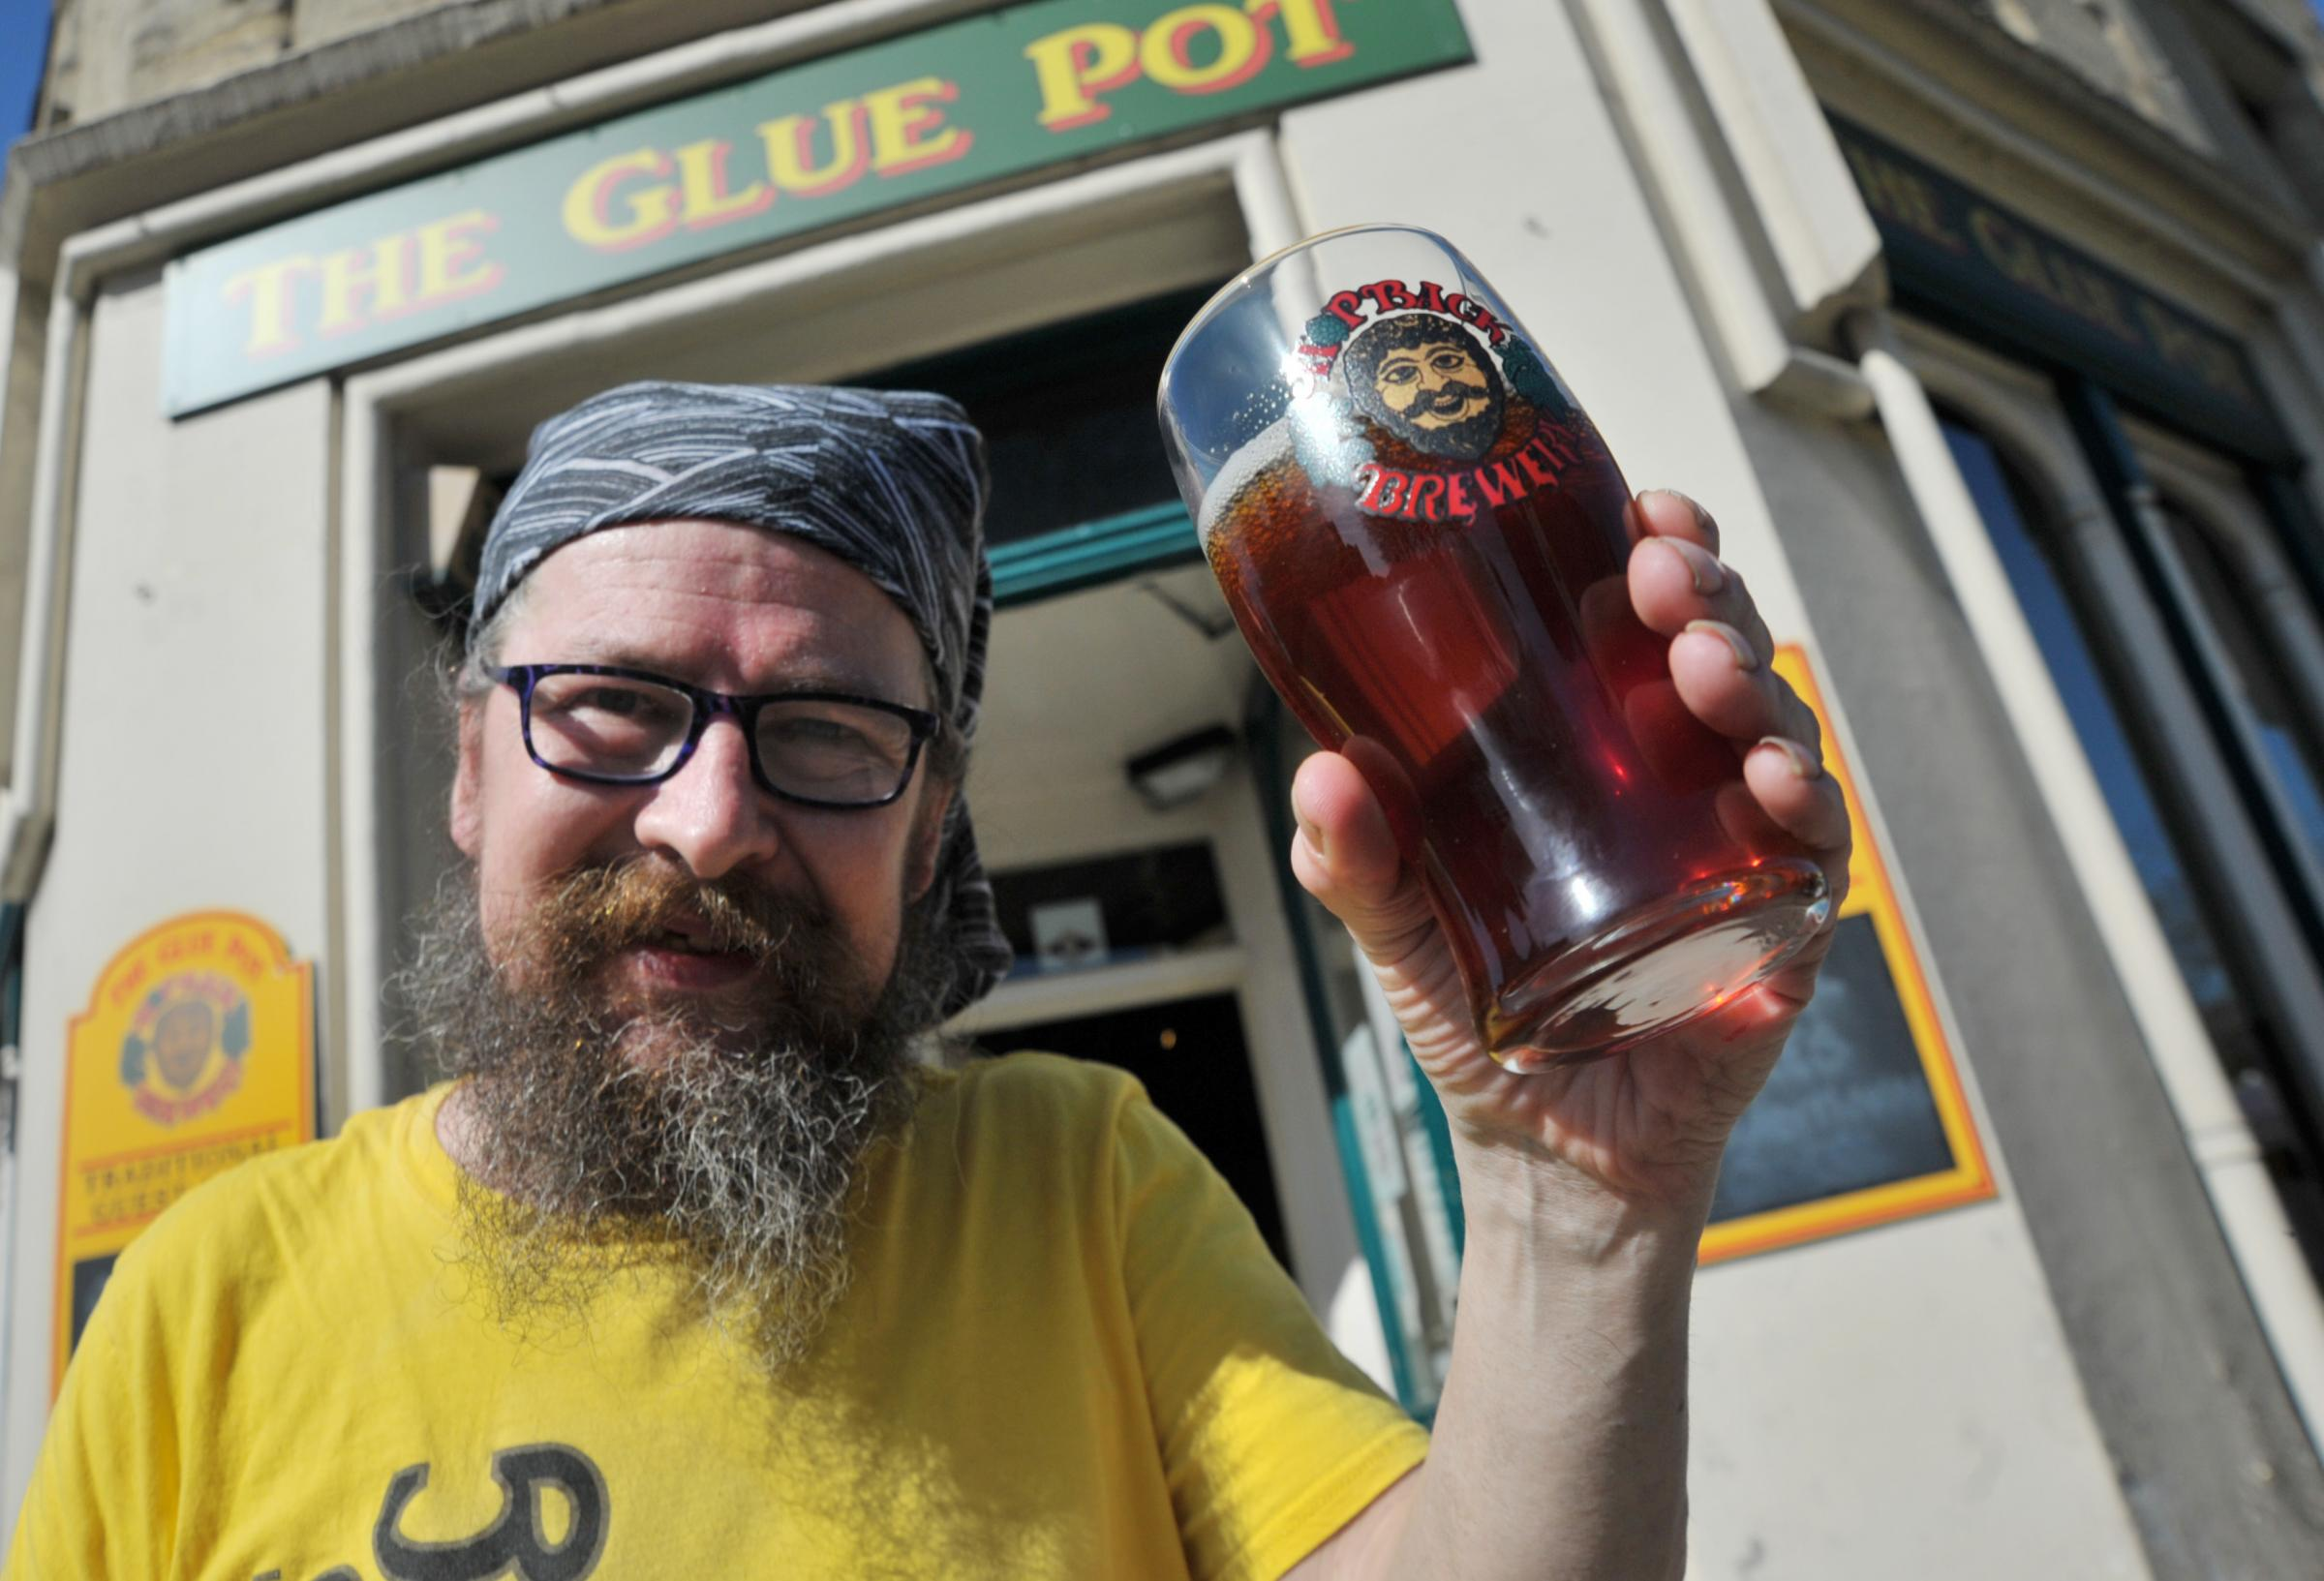 Sun brings the drinkers to the Glue Pot's sixth beer festival